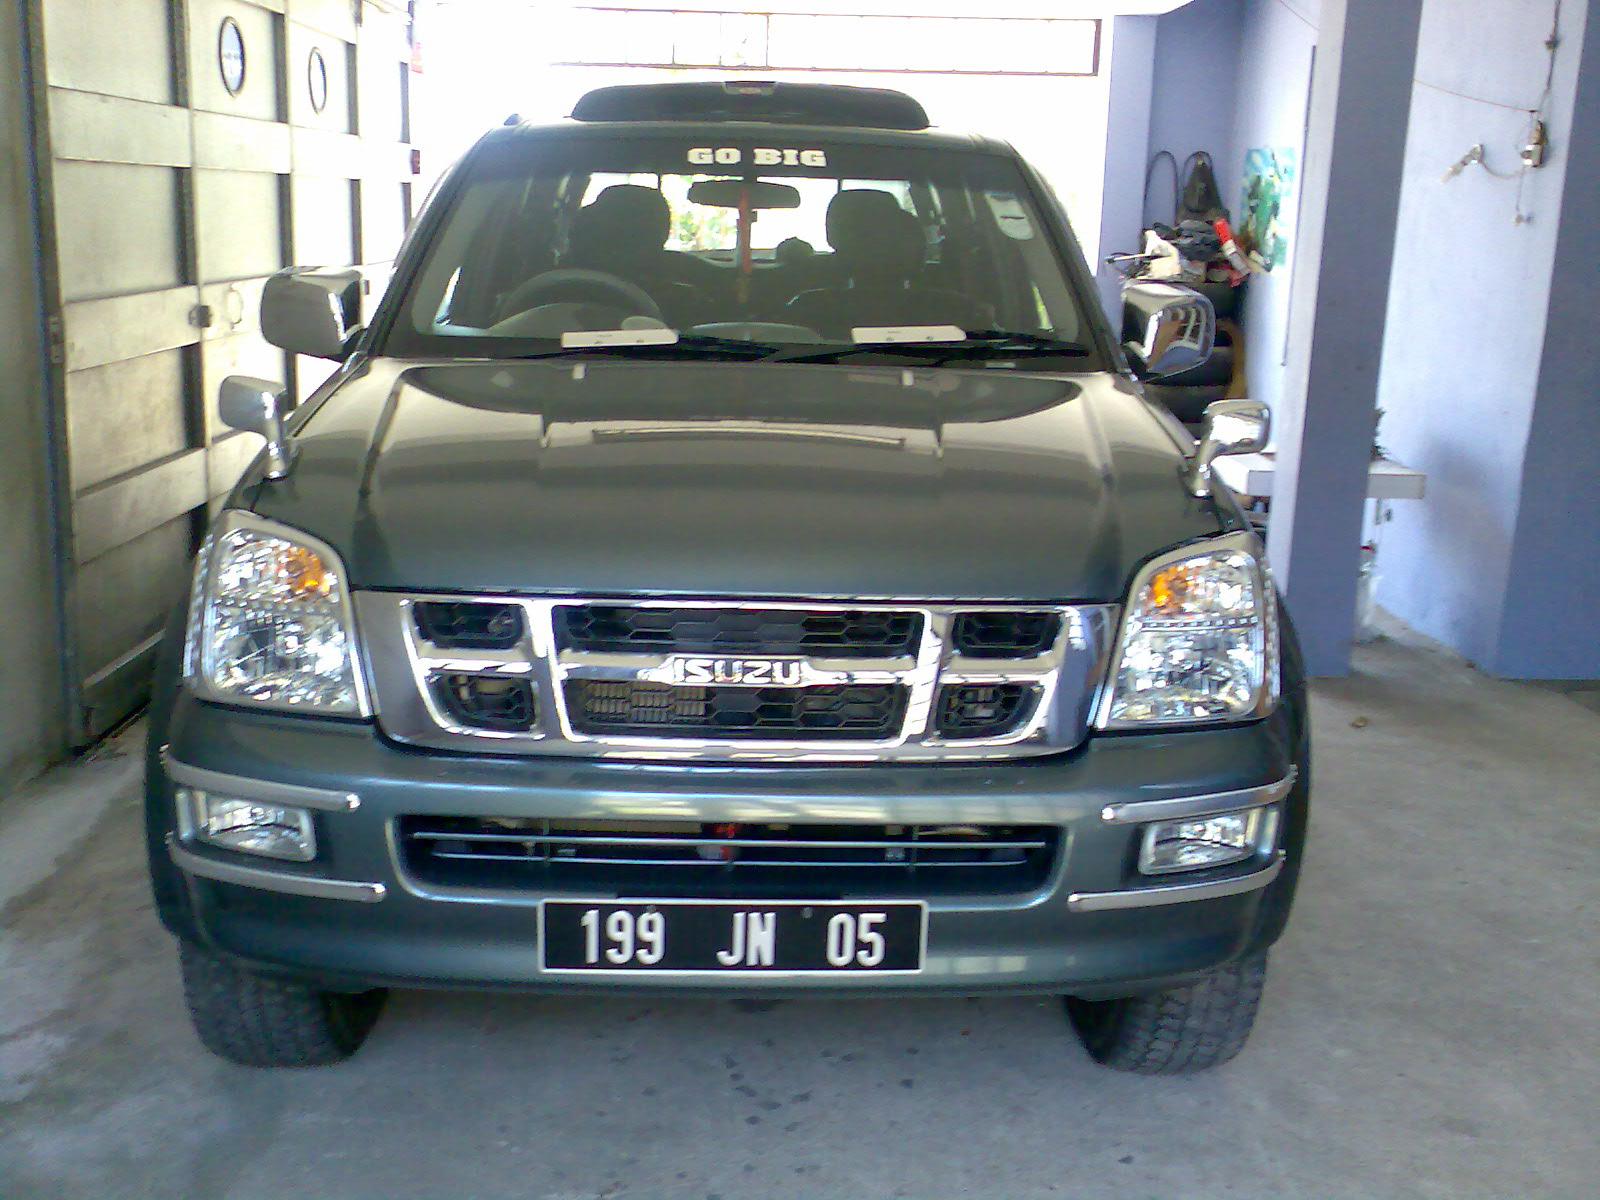 Isuzu i-Series #3